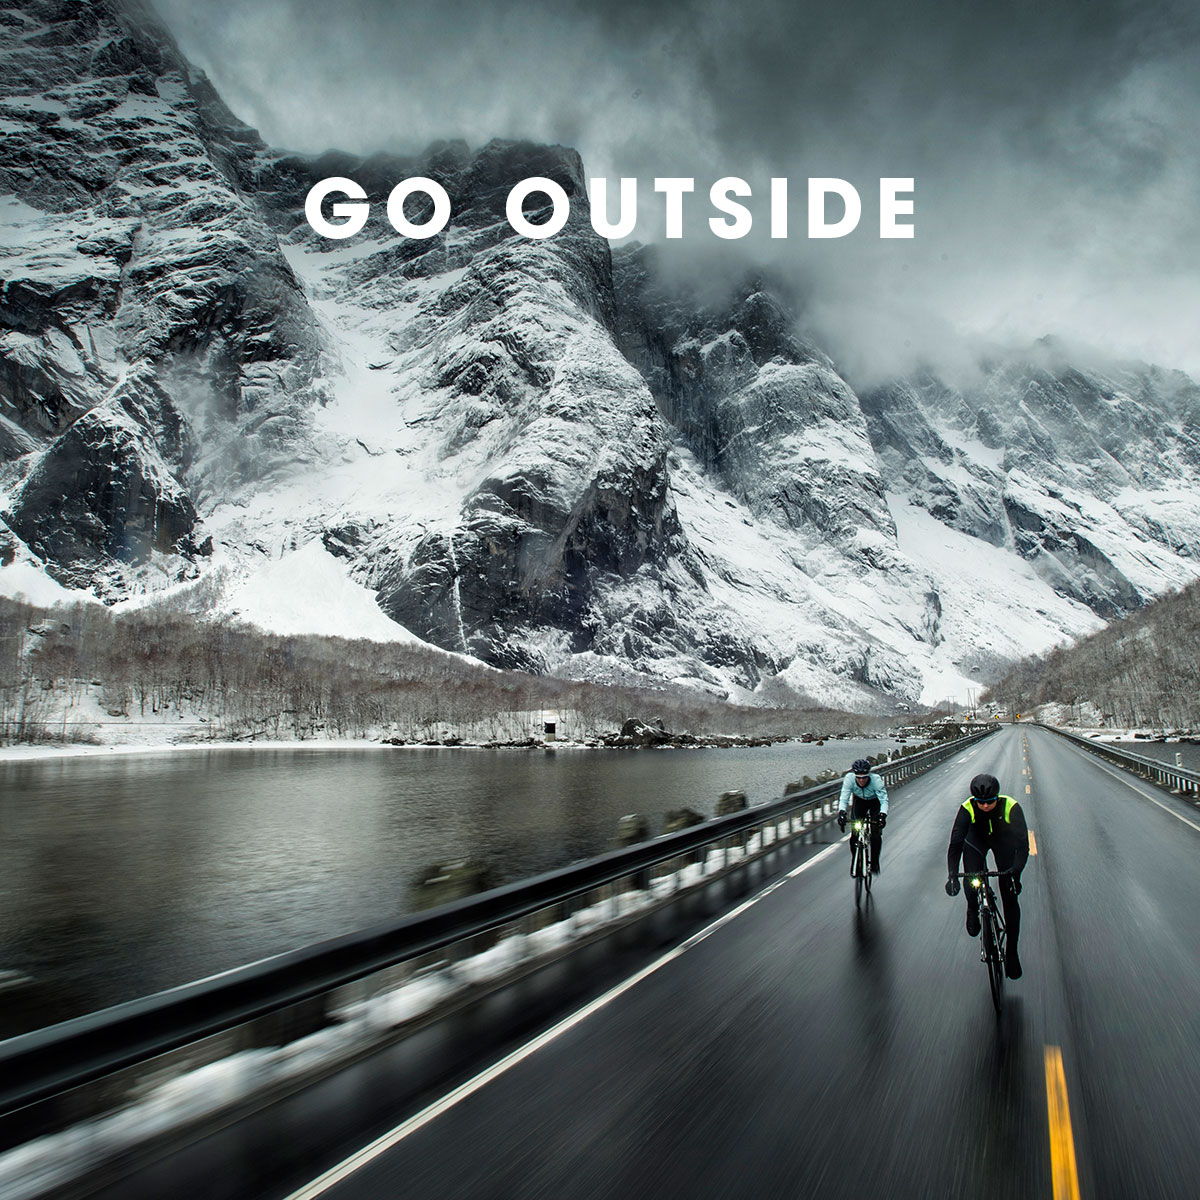 Go_Outside3_1200x1200-29